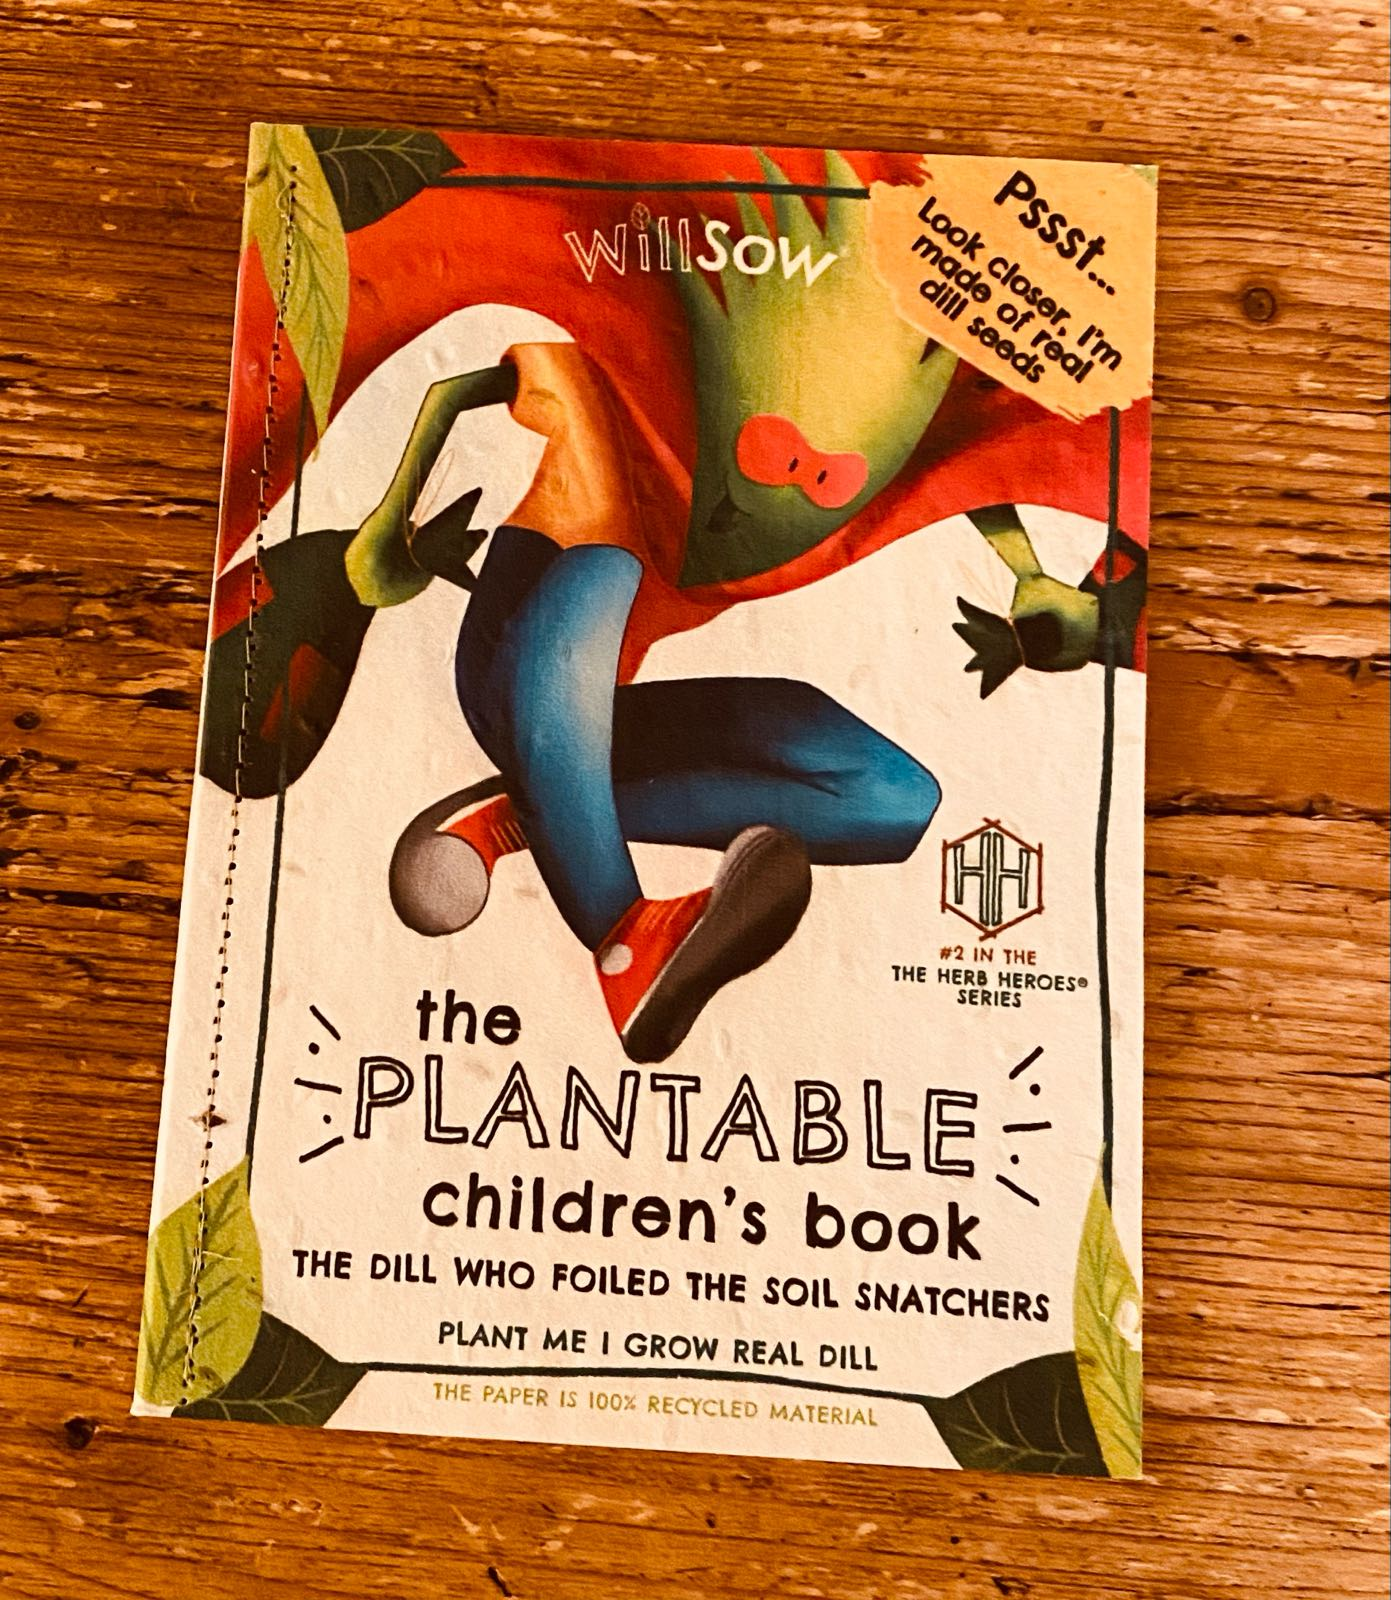 DILL - THE PLANTABLE CHILDREN'S BOOK